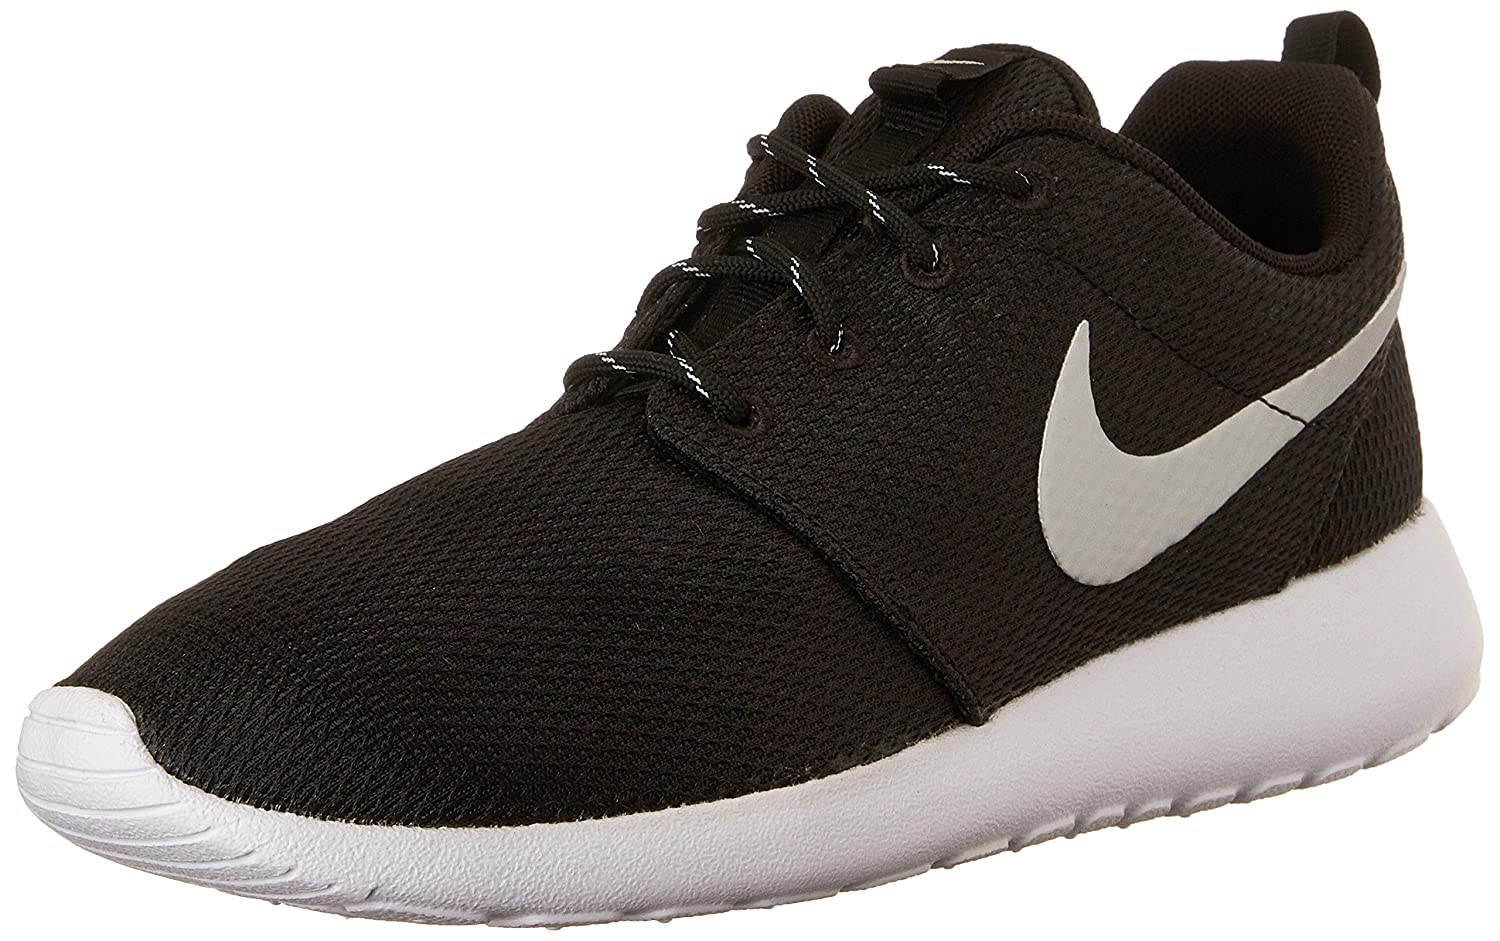 NIKE Women's Roshe One Running Shoe B00K5XQ0ZG 6 B(M) US|Black/Metallic Platinum-white